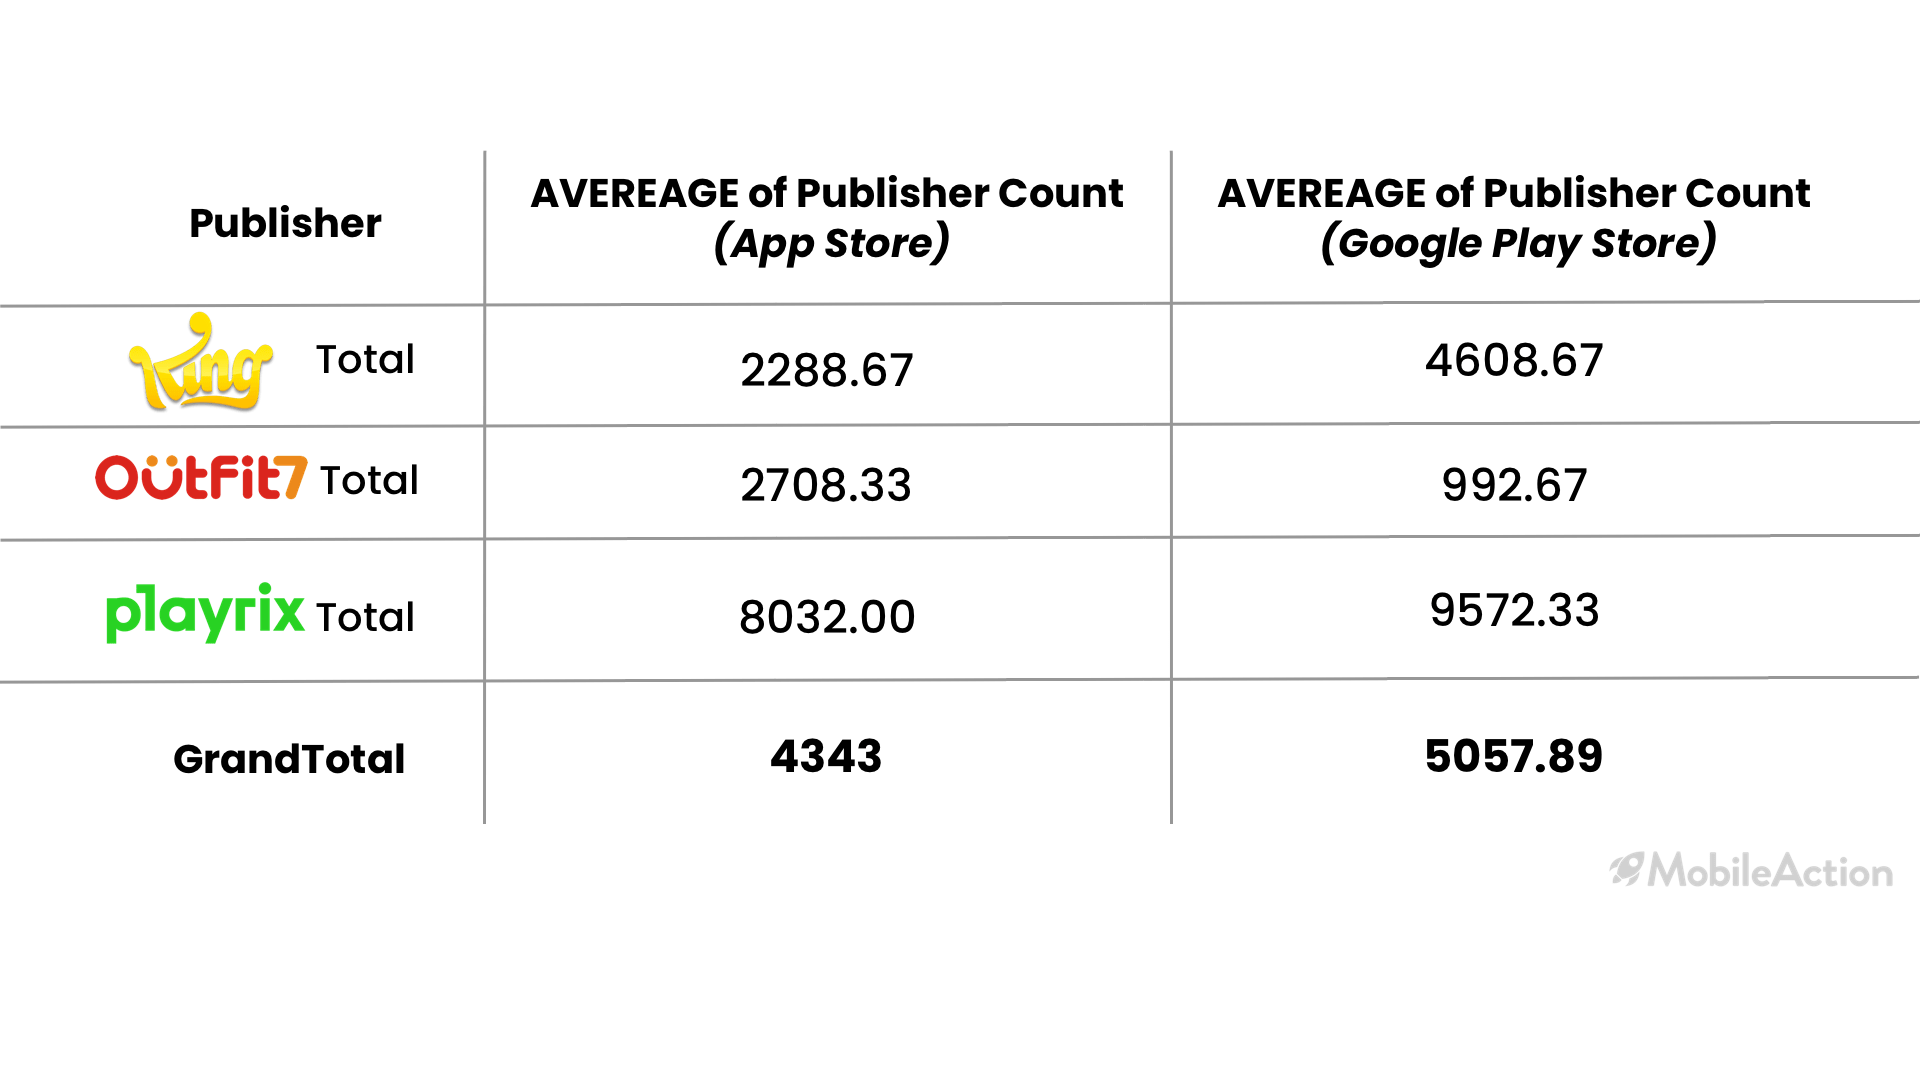 averages of ad publisher counts